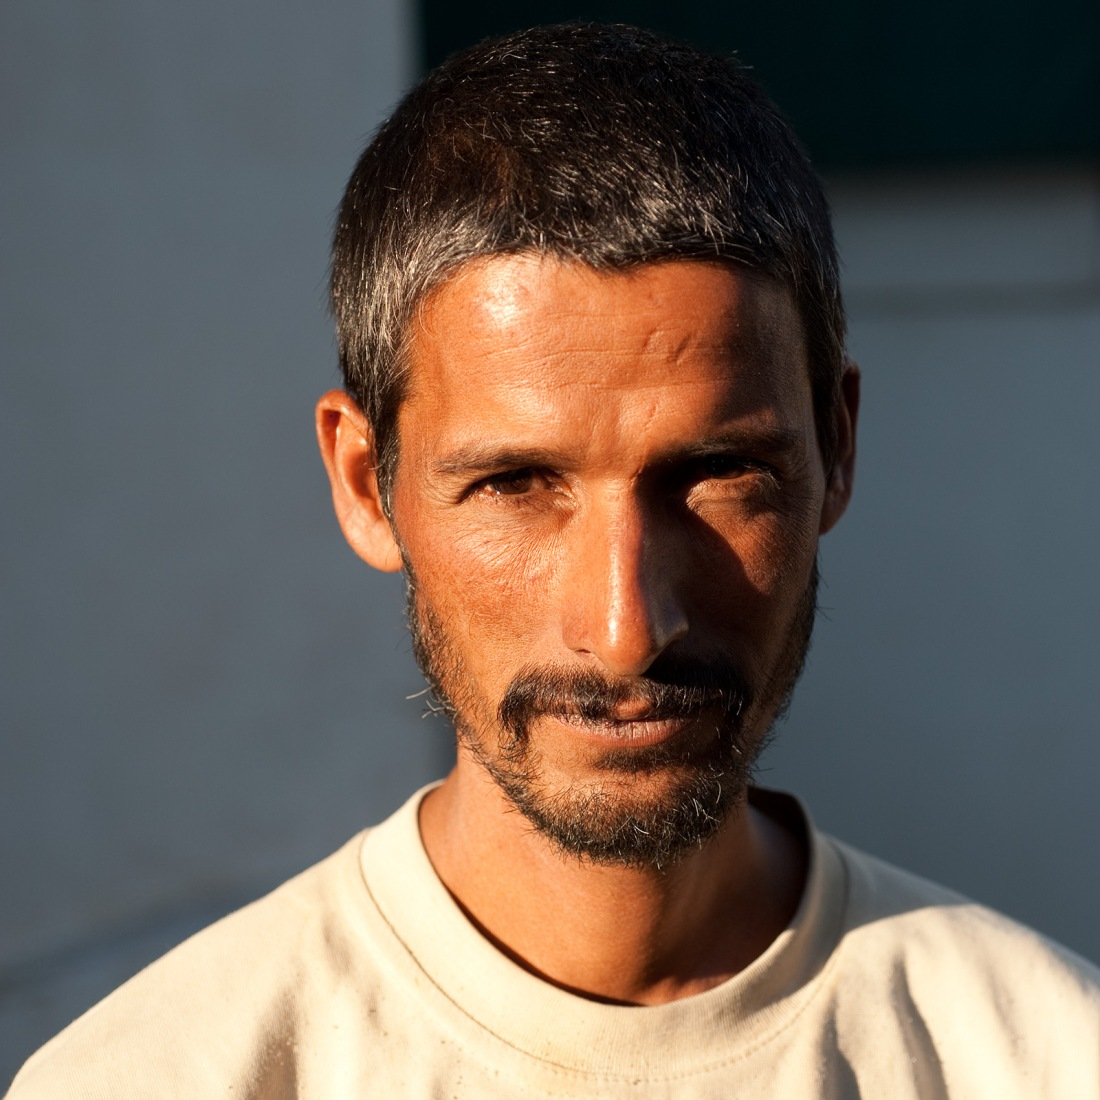 Bachan, one of our porters, at Ghuttu on our last day.